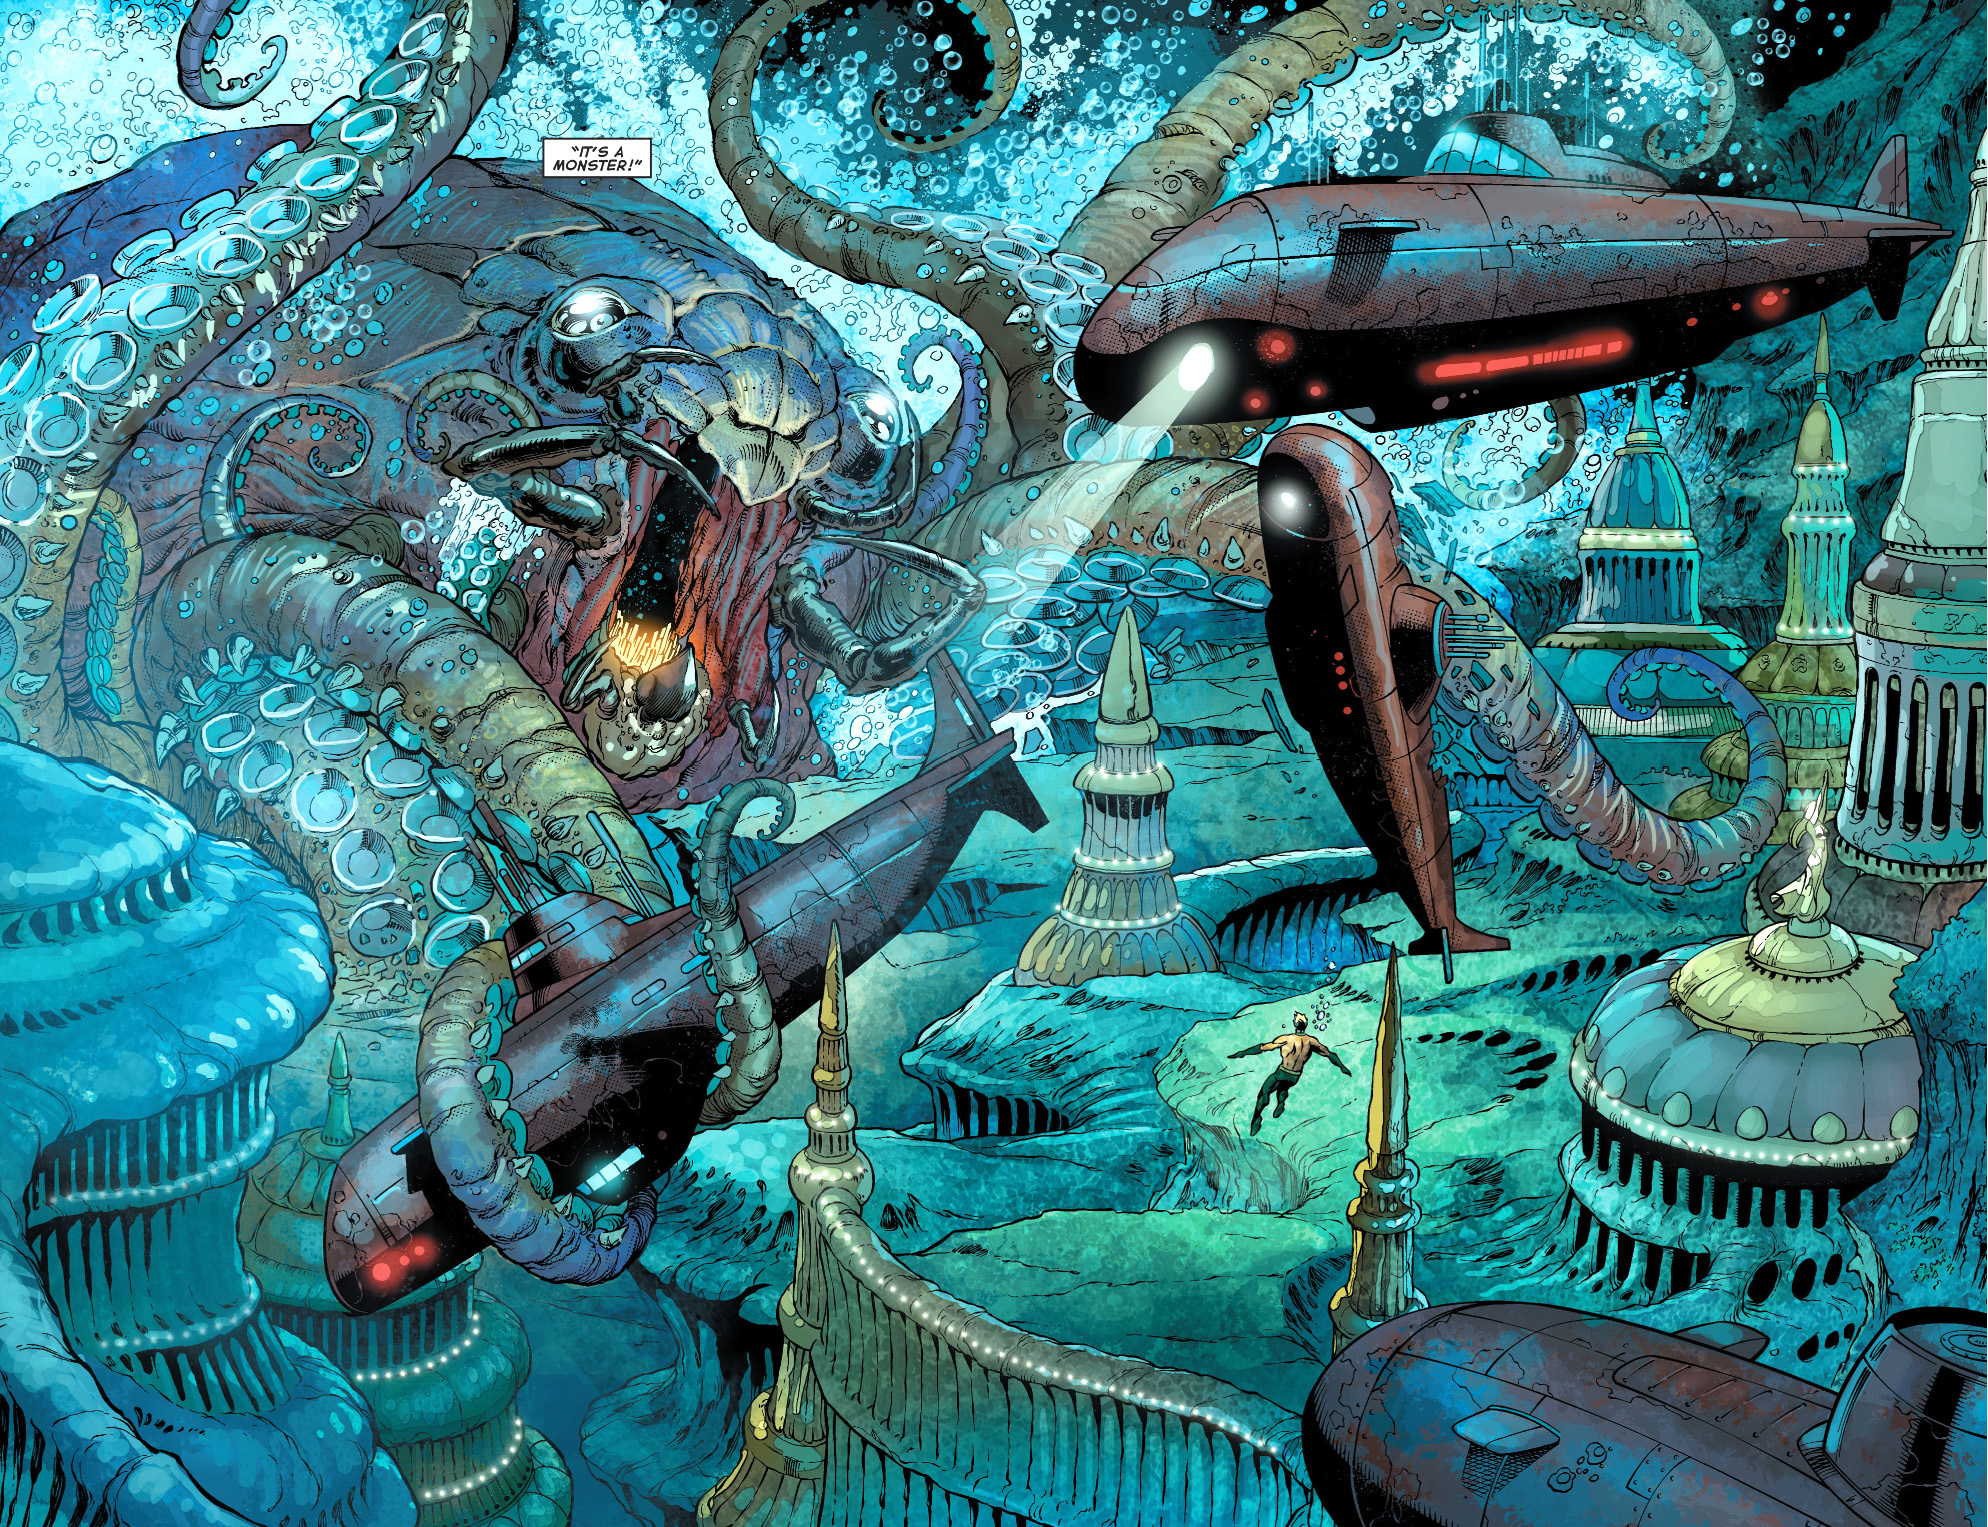 aquaman uses topo to attack the scavenger's fleet